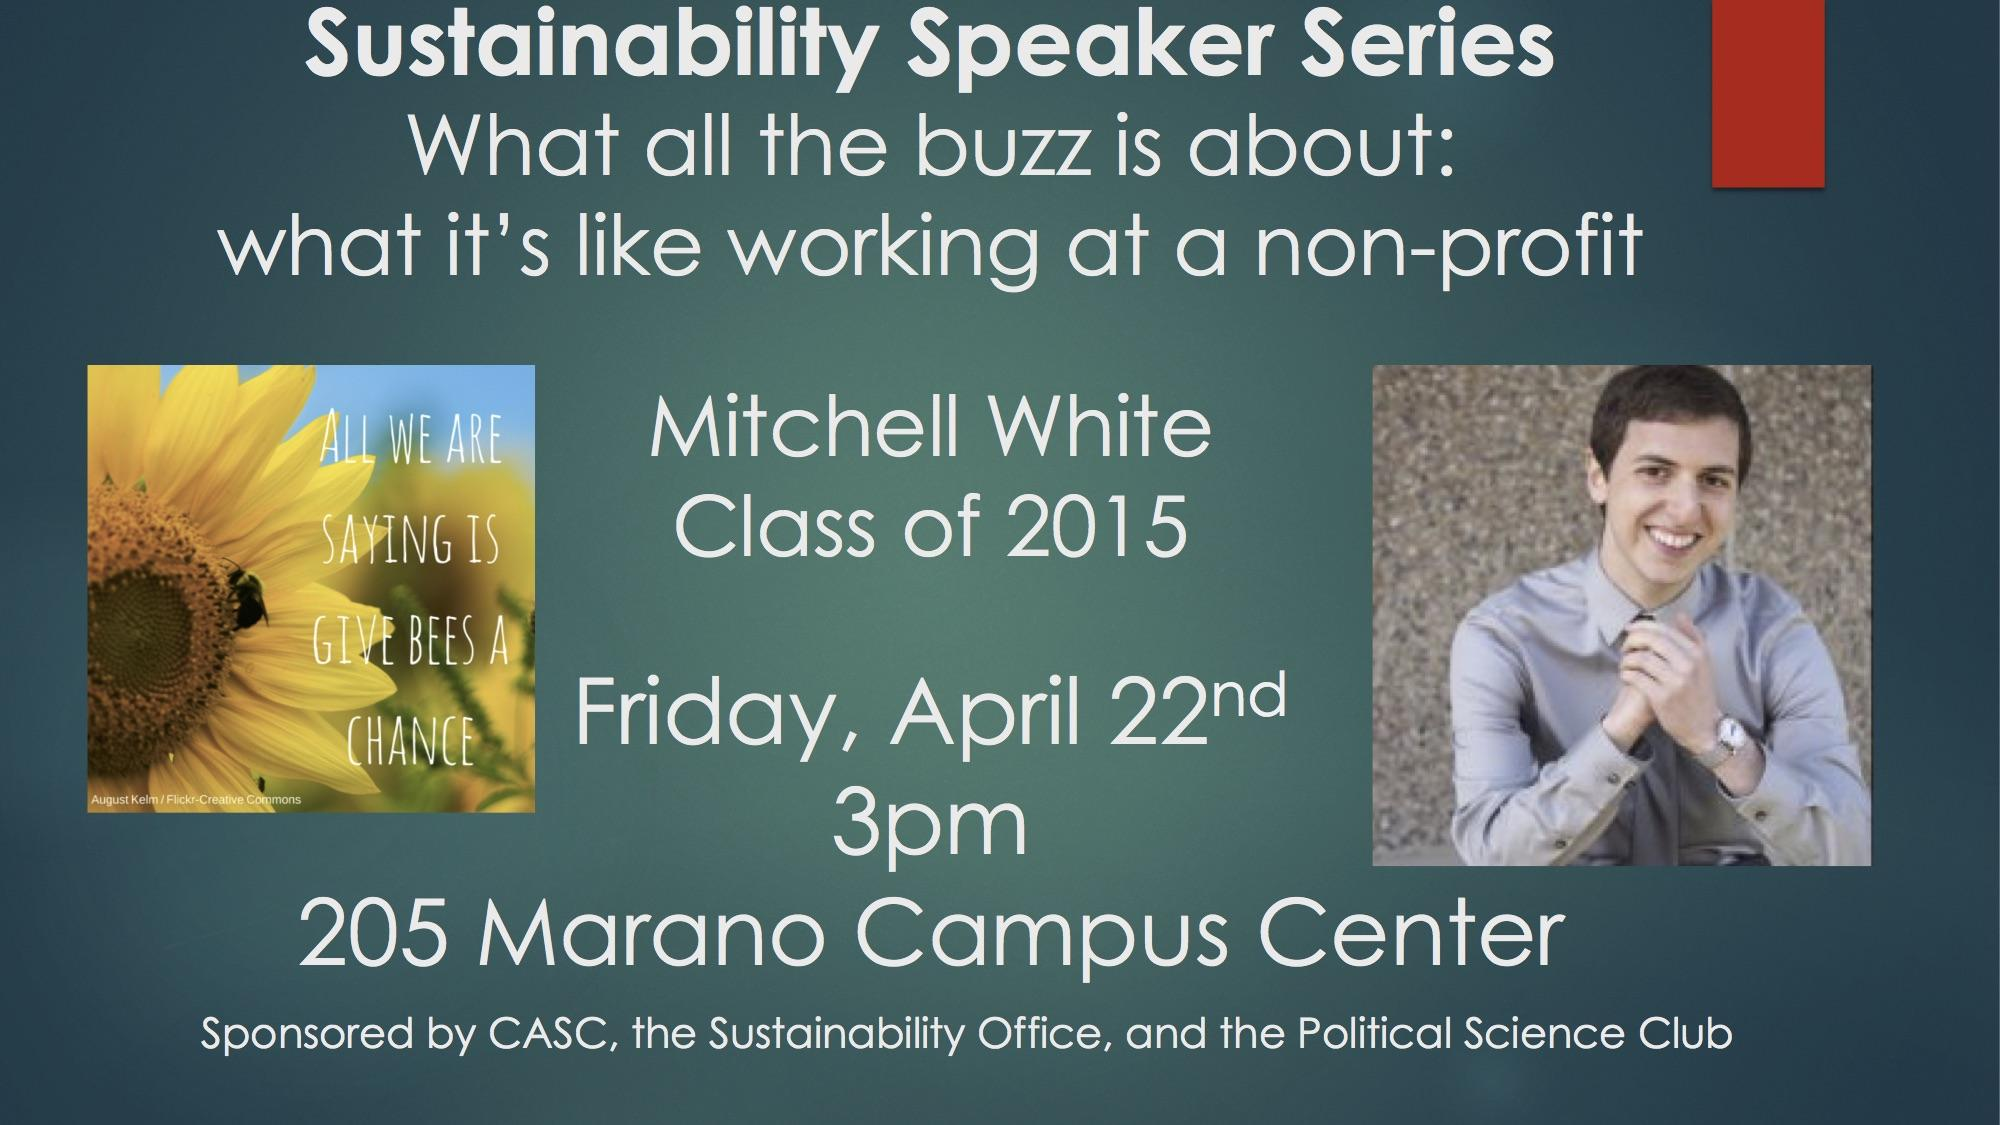 Mitch White Sustainability Speaker Series